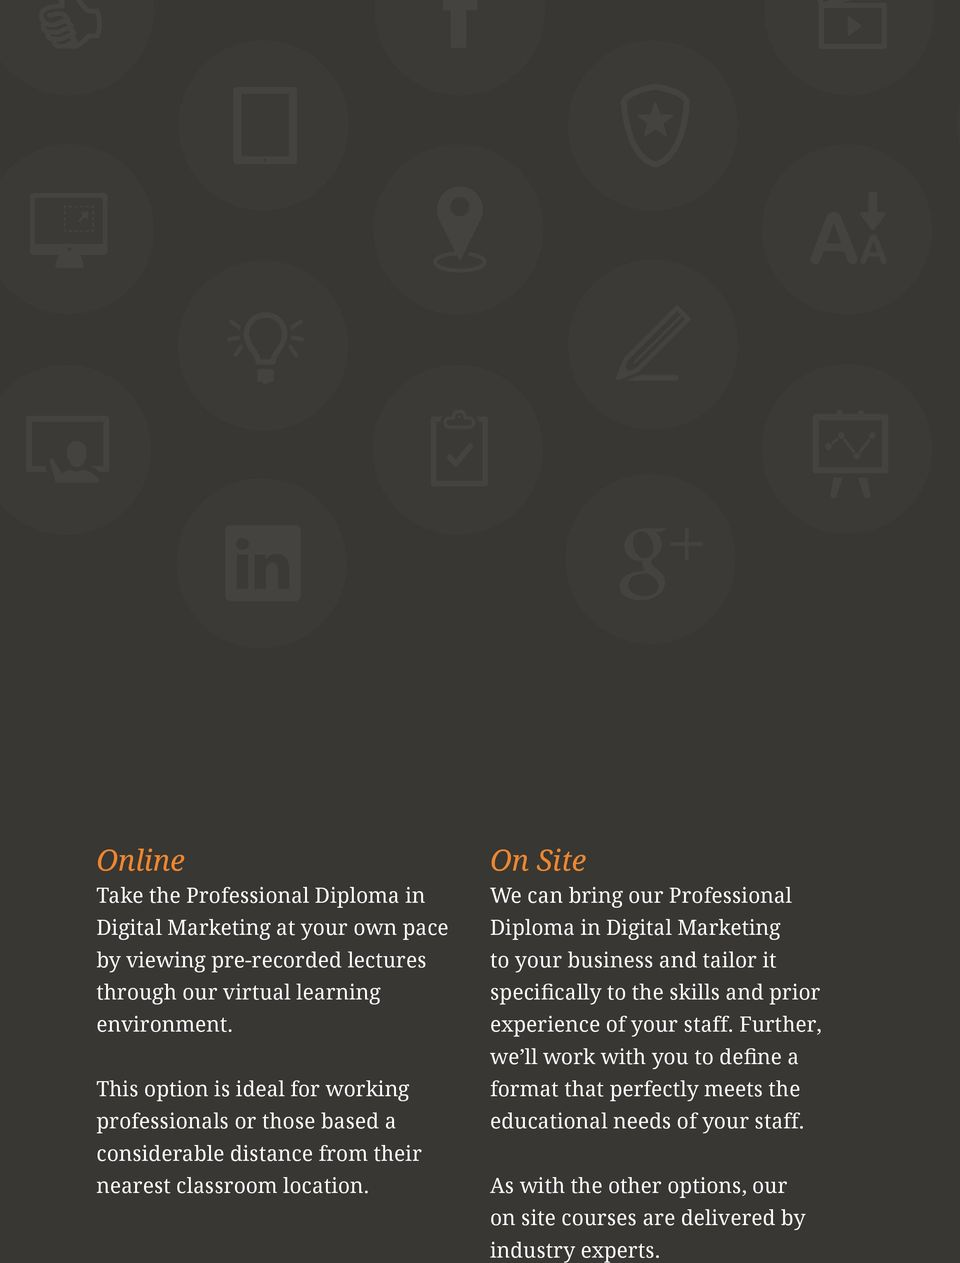 On Site We can bring our Professional Diploma in Digital Marketing to your business and tailor it specifically to the skills and prior experience of your